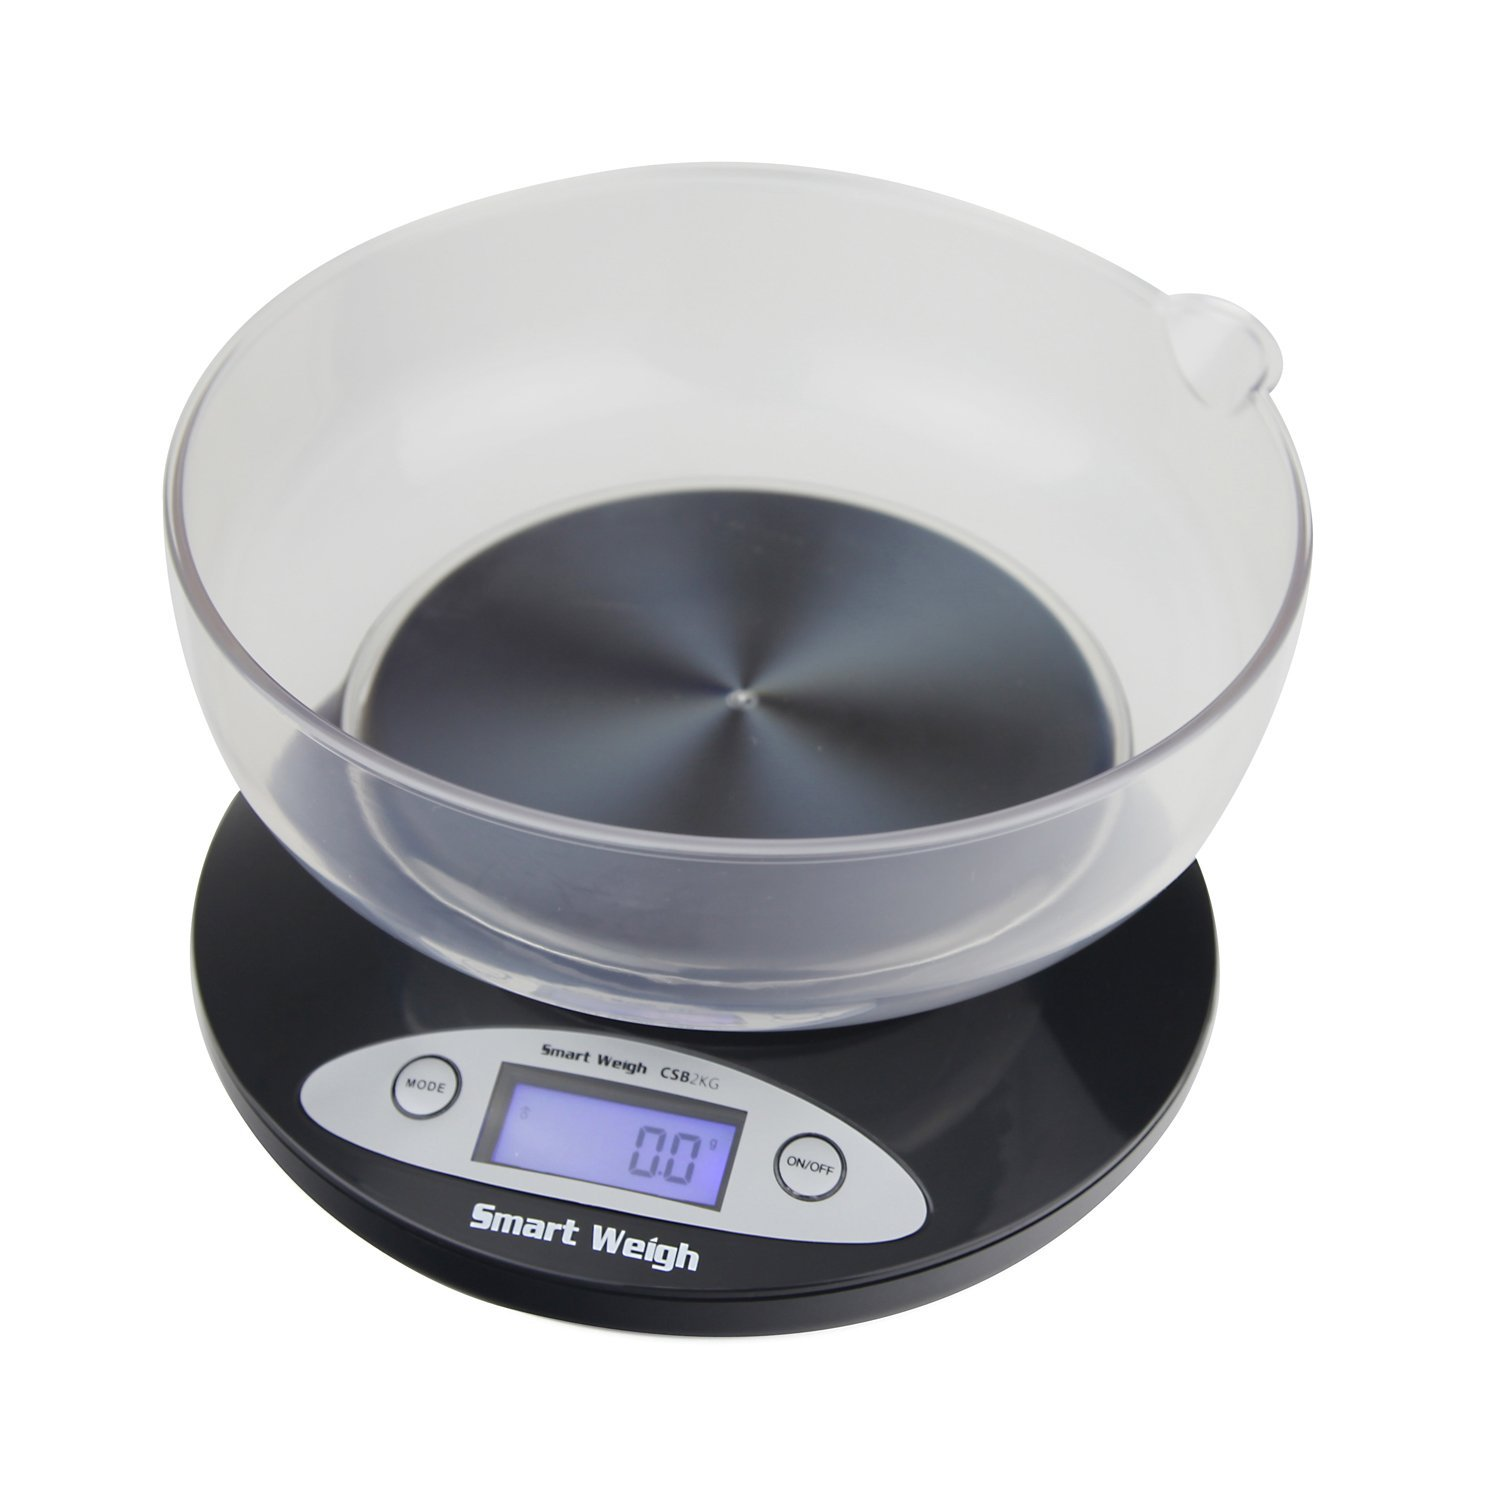 Cassandra M 39 S Place Precision Digital Kitchen Scale With Removable Bowl Review